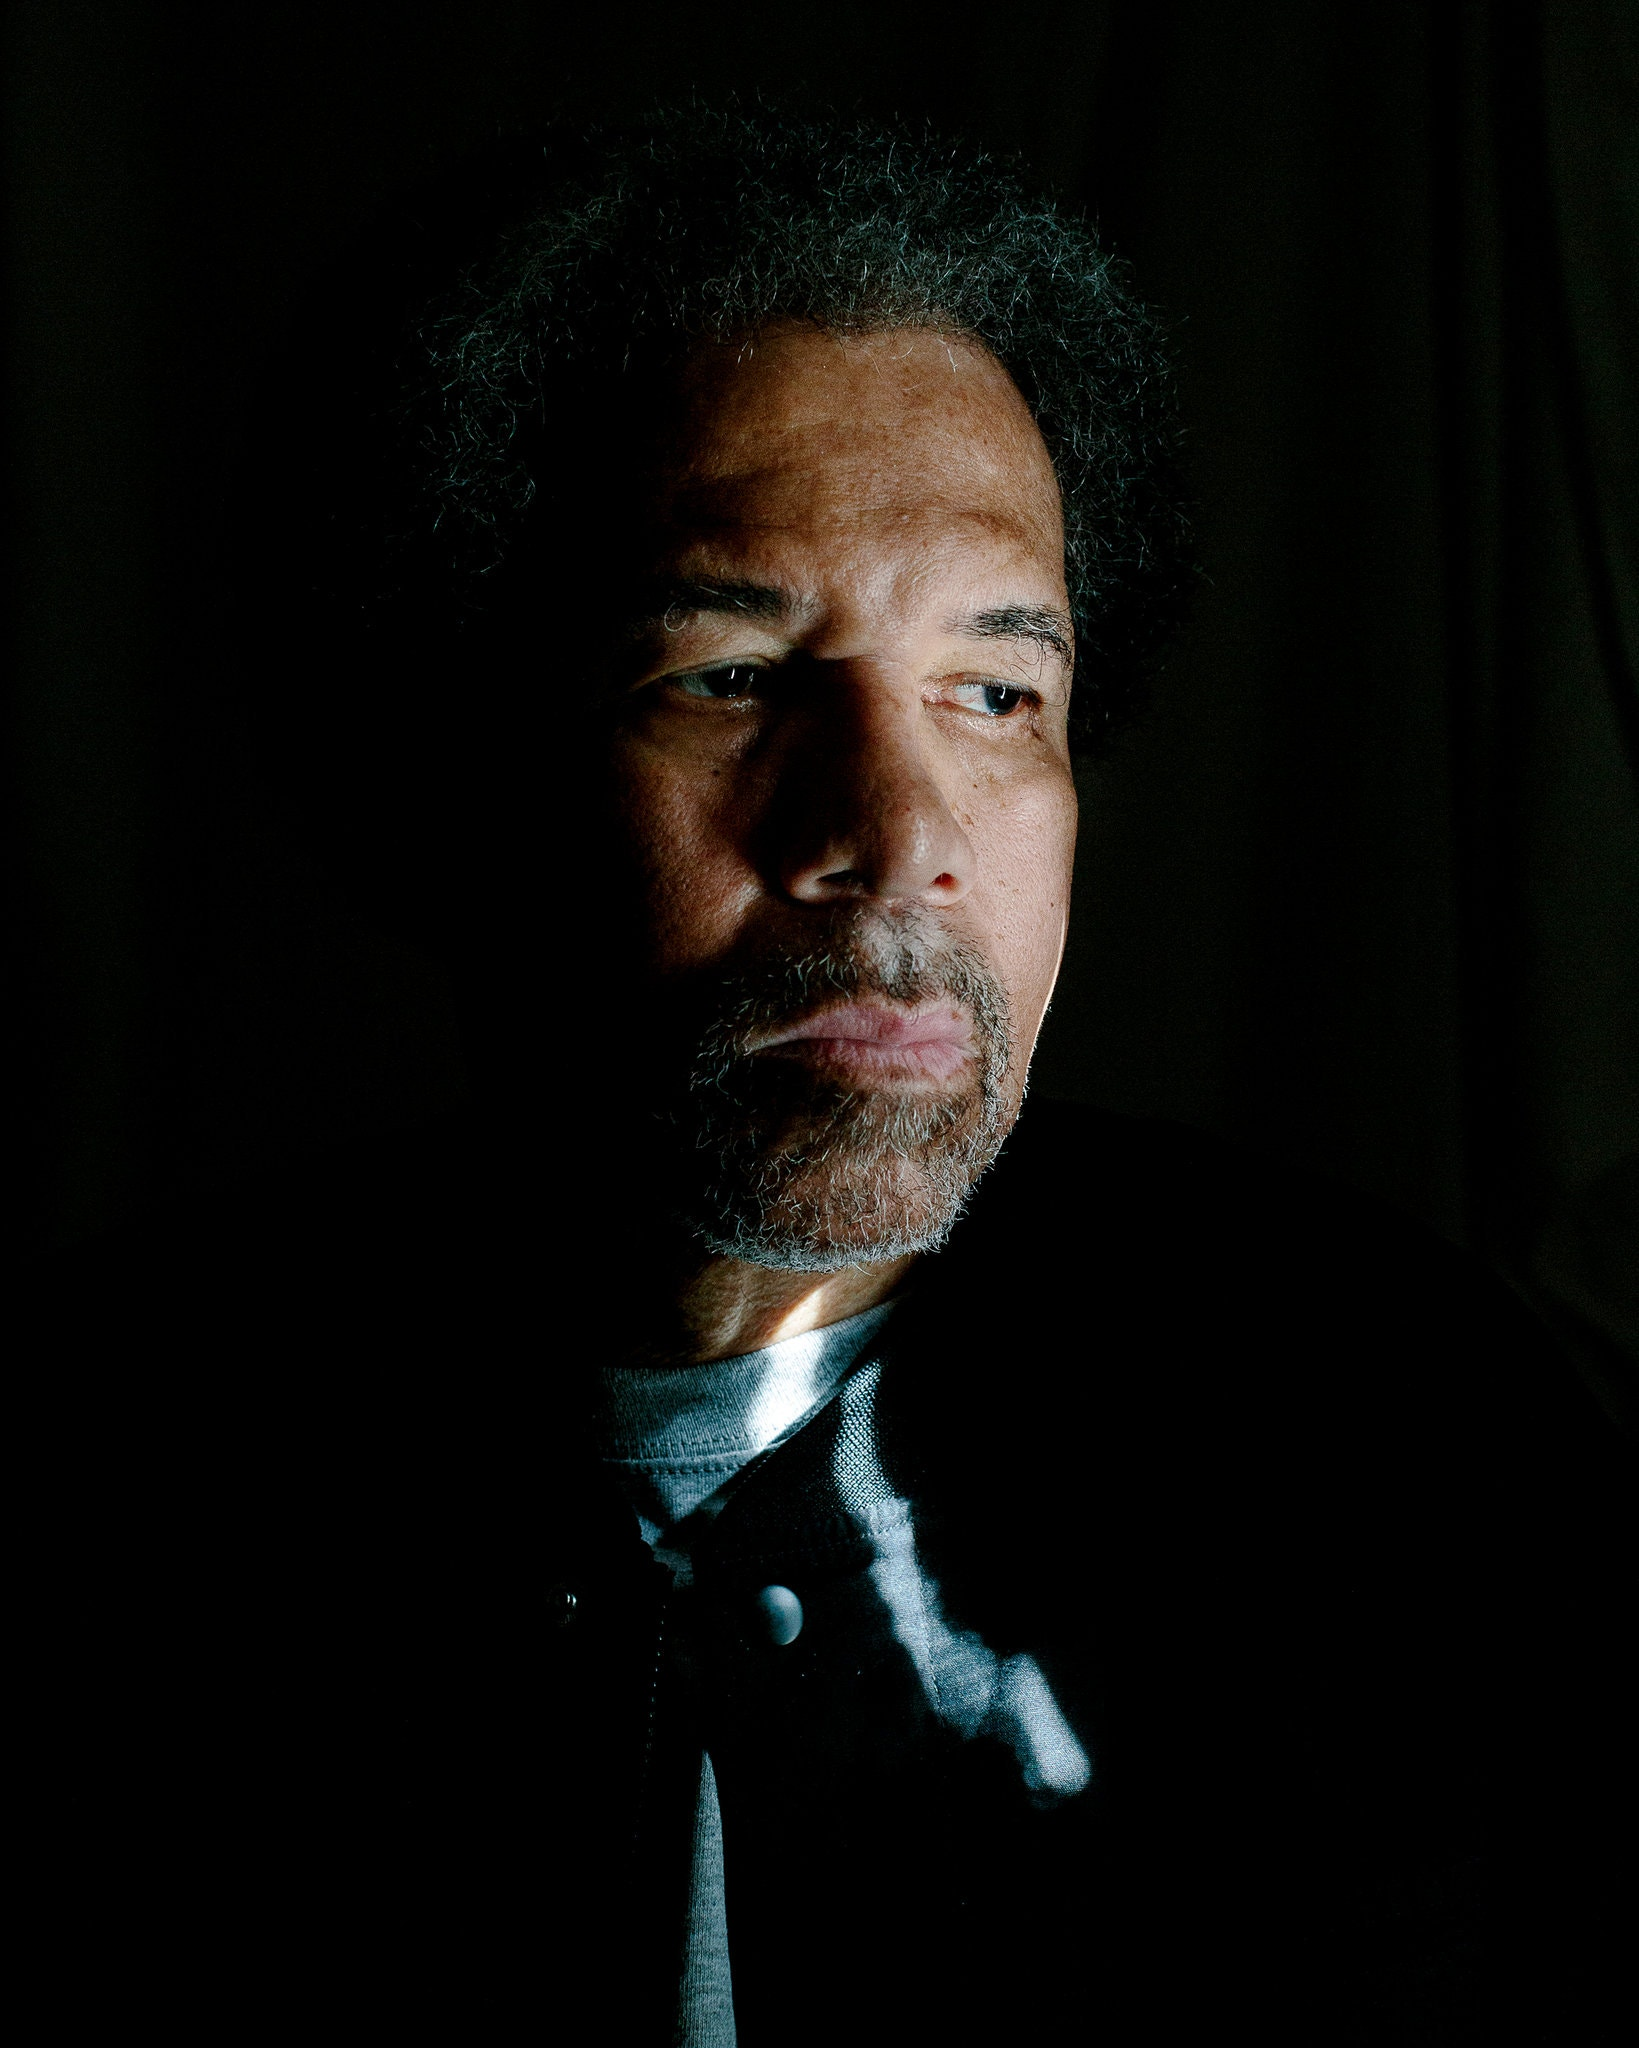 NYTBR - The Stoic Philosopher of the LockupSOLITARY Unbroken by Four Decades in Solitary Confinement. My Story of Transformation and Hope. By Albert Woodfox